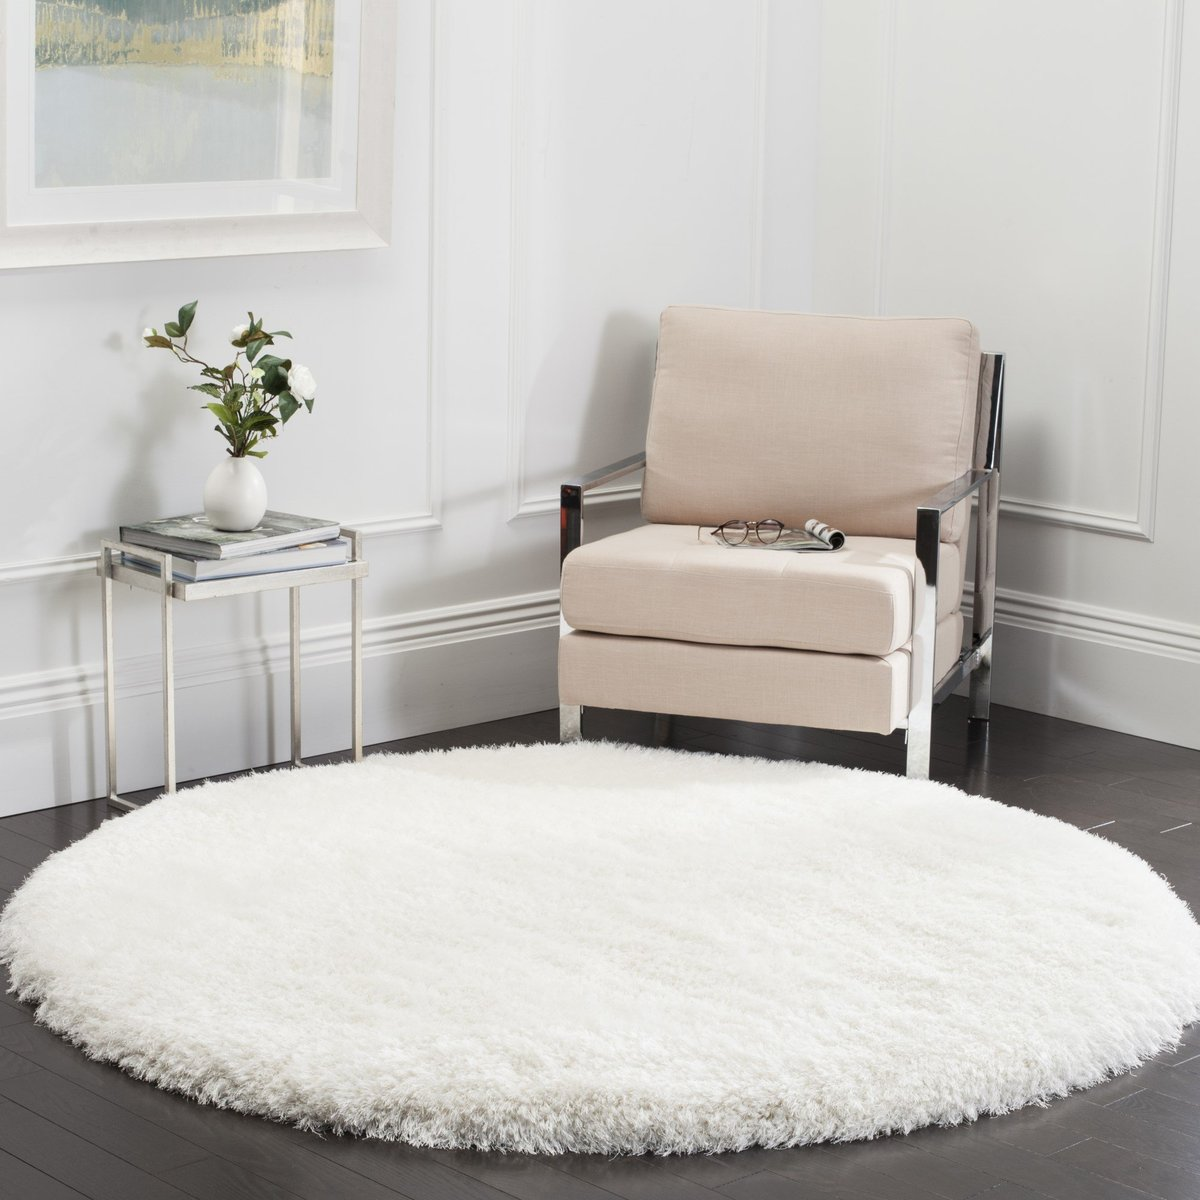 Round Shag Rug in Living Room